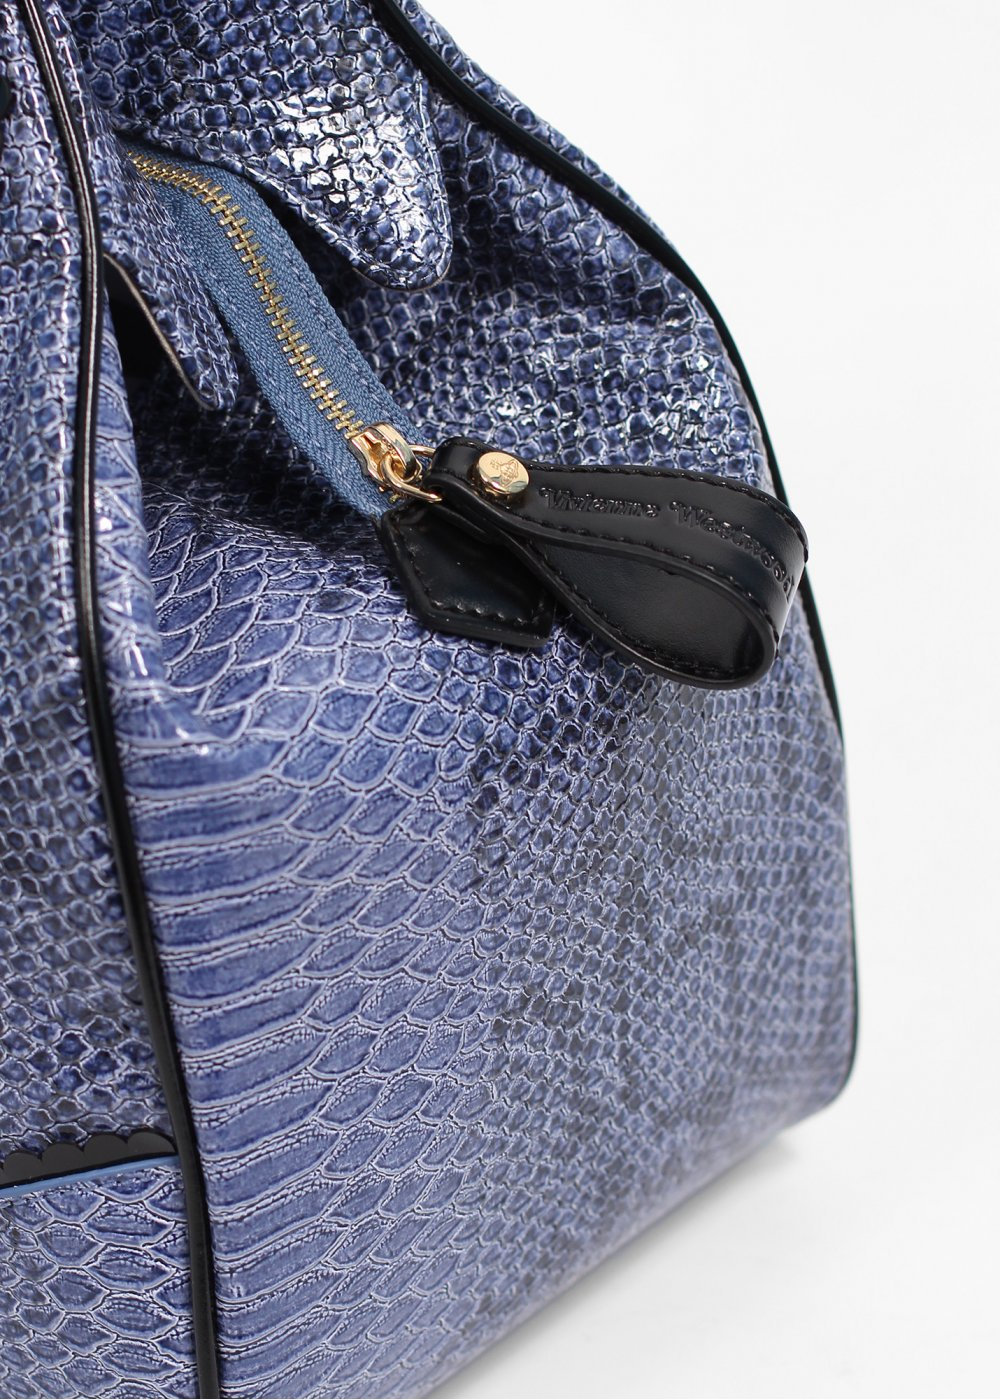 Vivienne Westwood Accessories Frilly Snake Bag Blue, AW13.